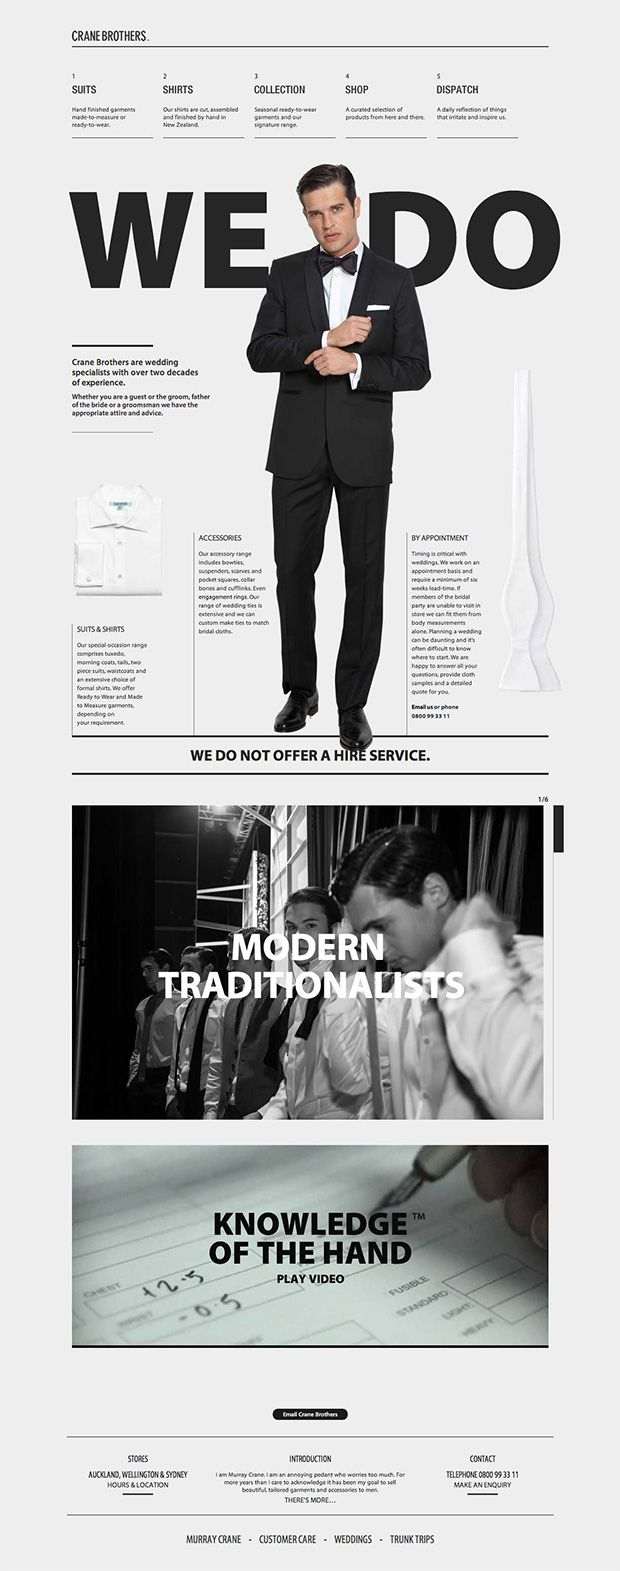 Crane-Brothers - Web Design  http://crane-brothers.com/wedding-suits